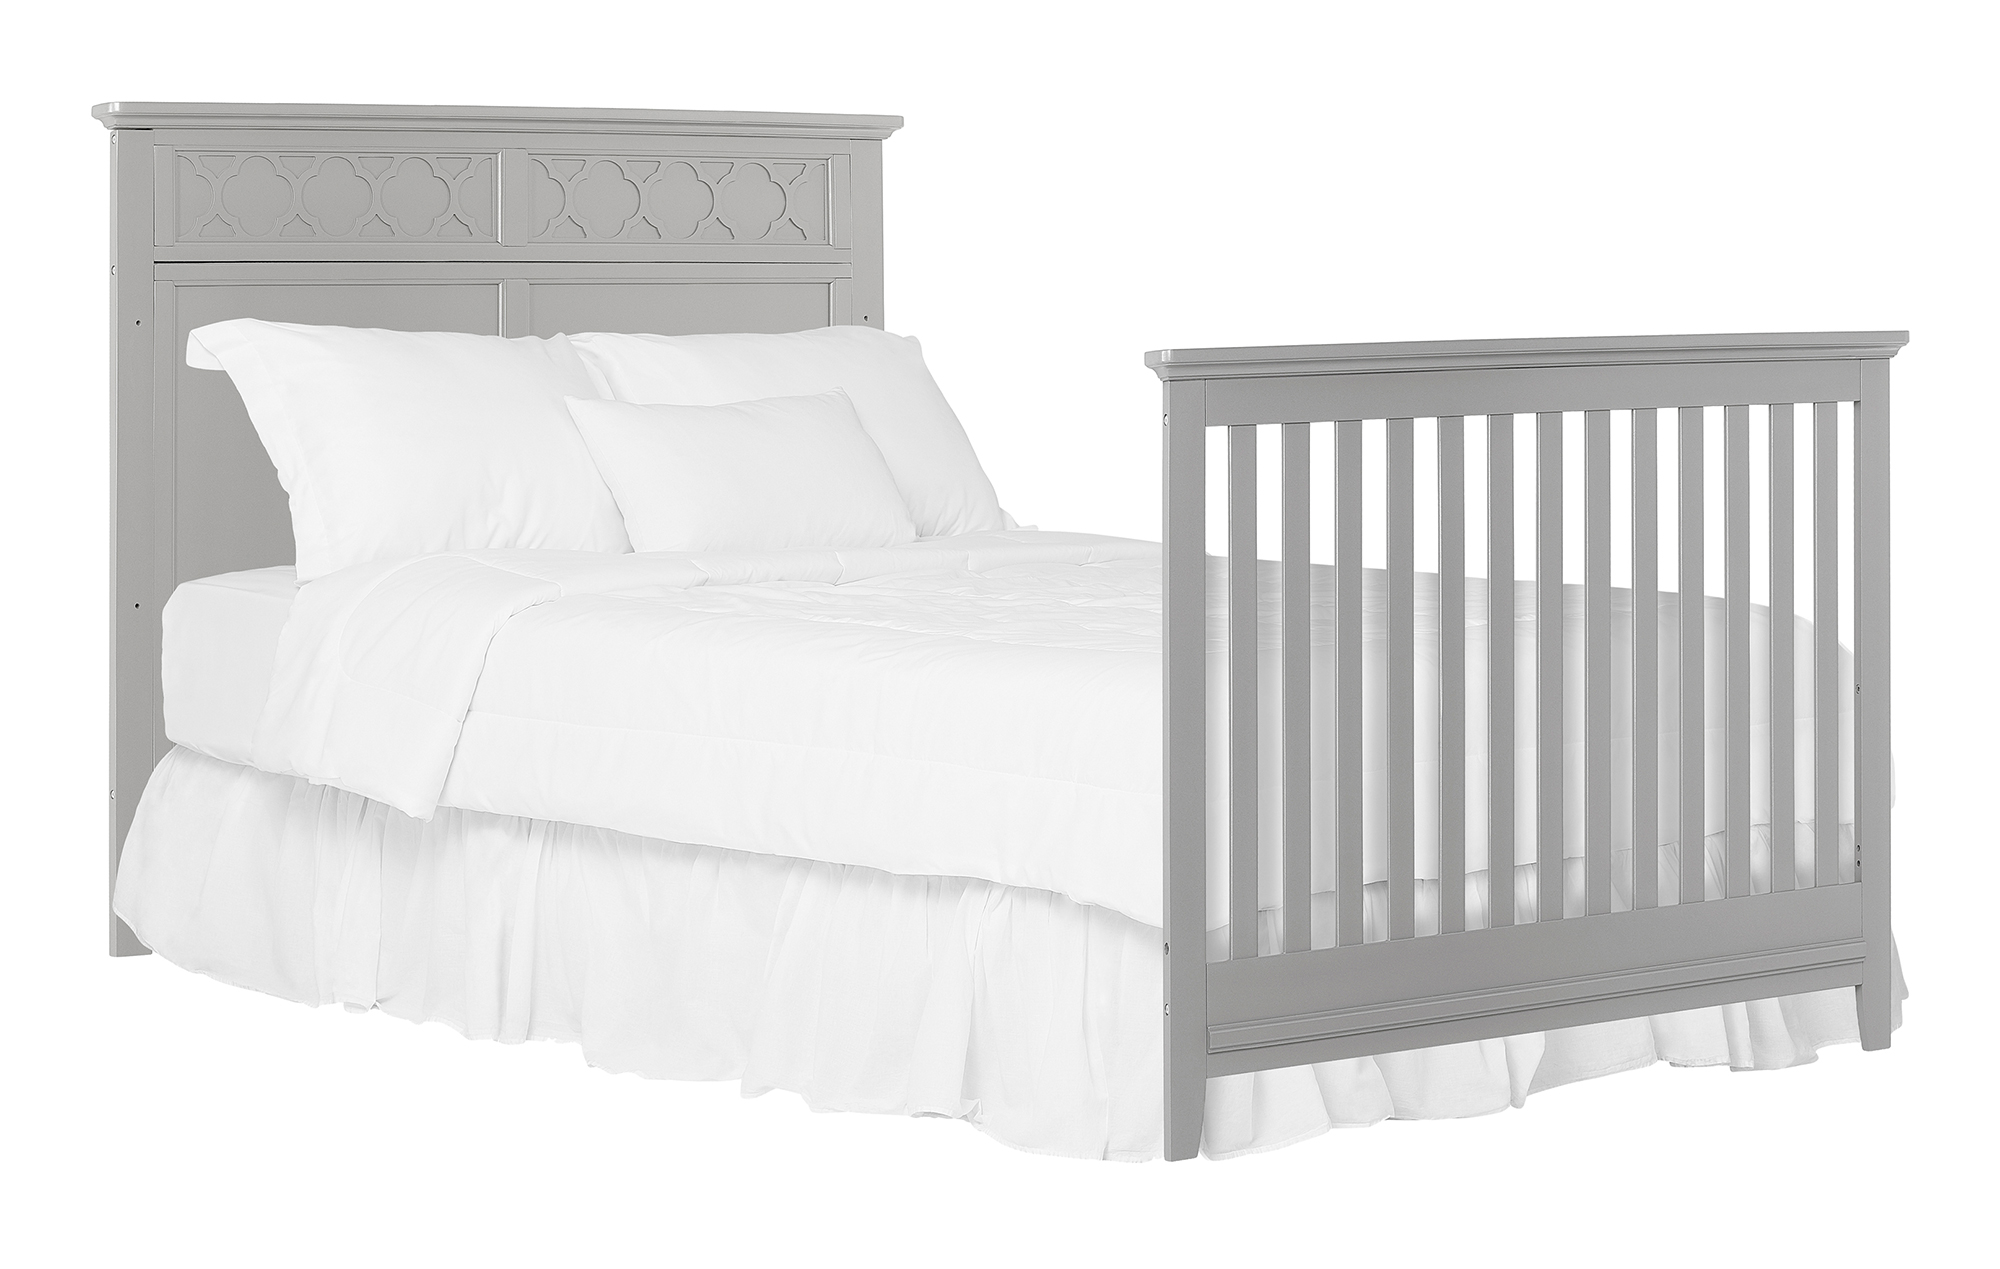 774-SGP Fairview Full Size Bed with Headboard